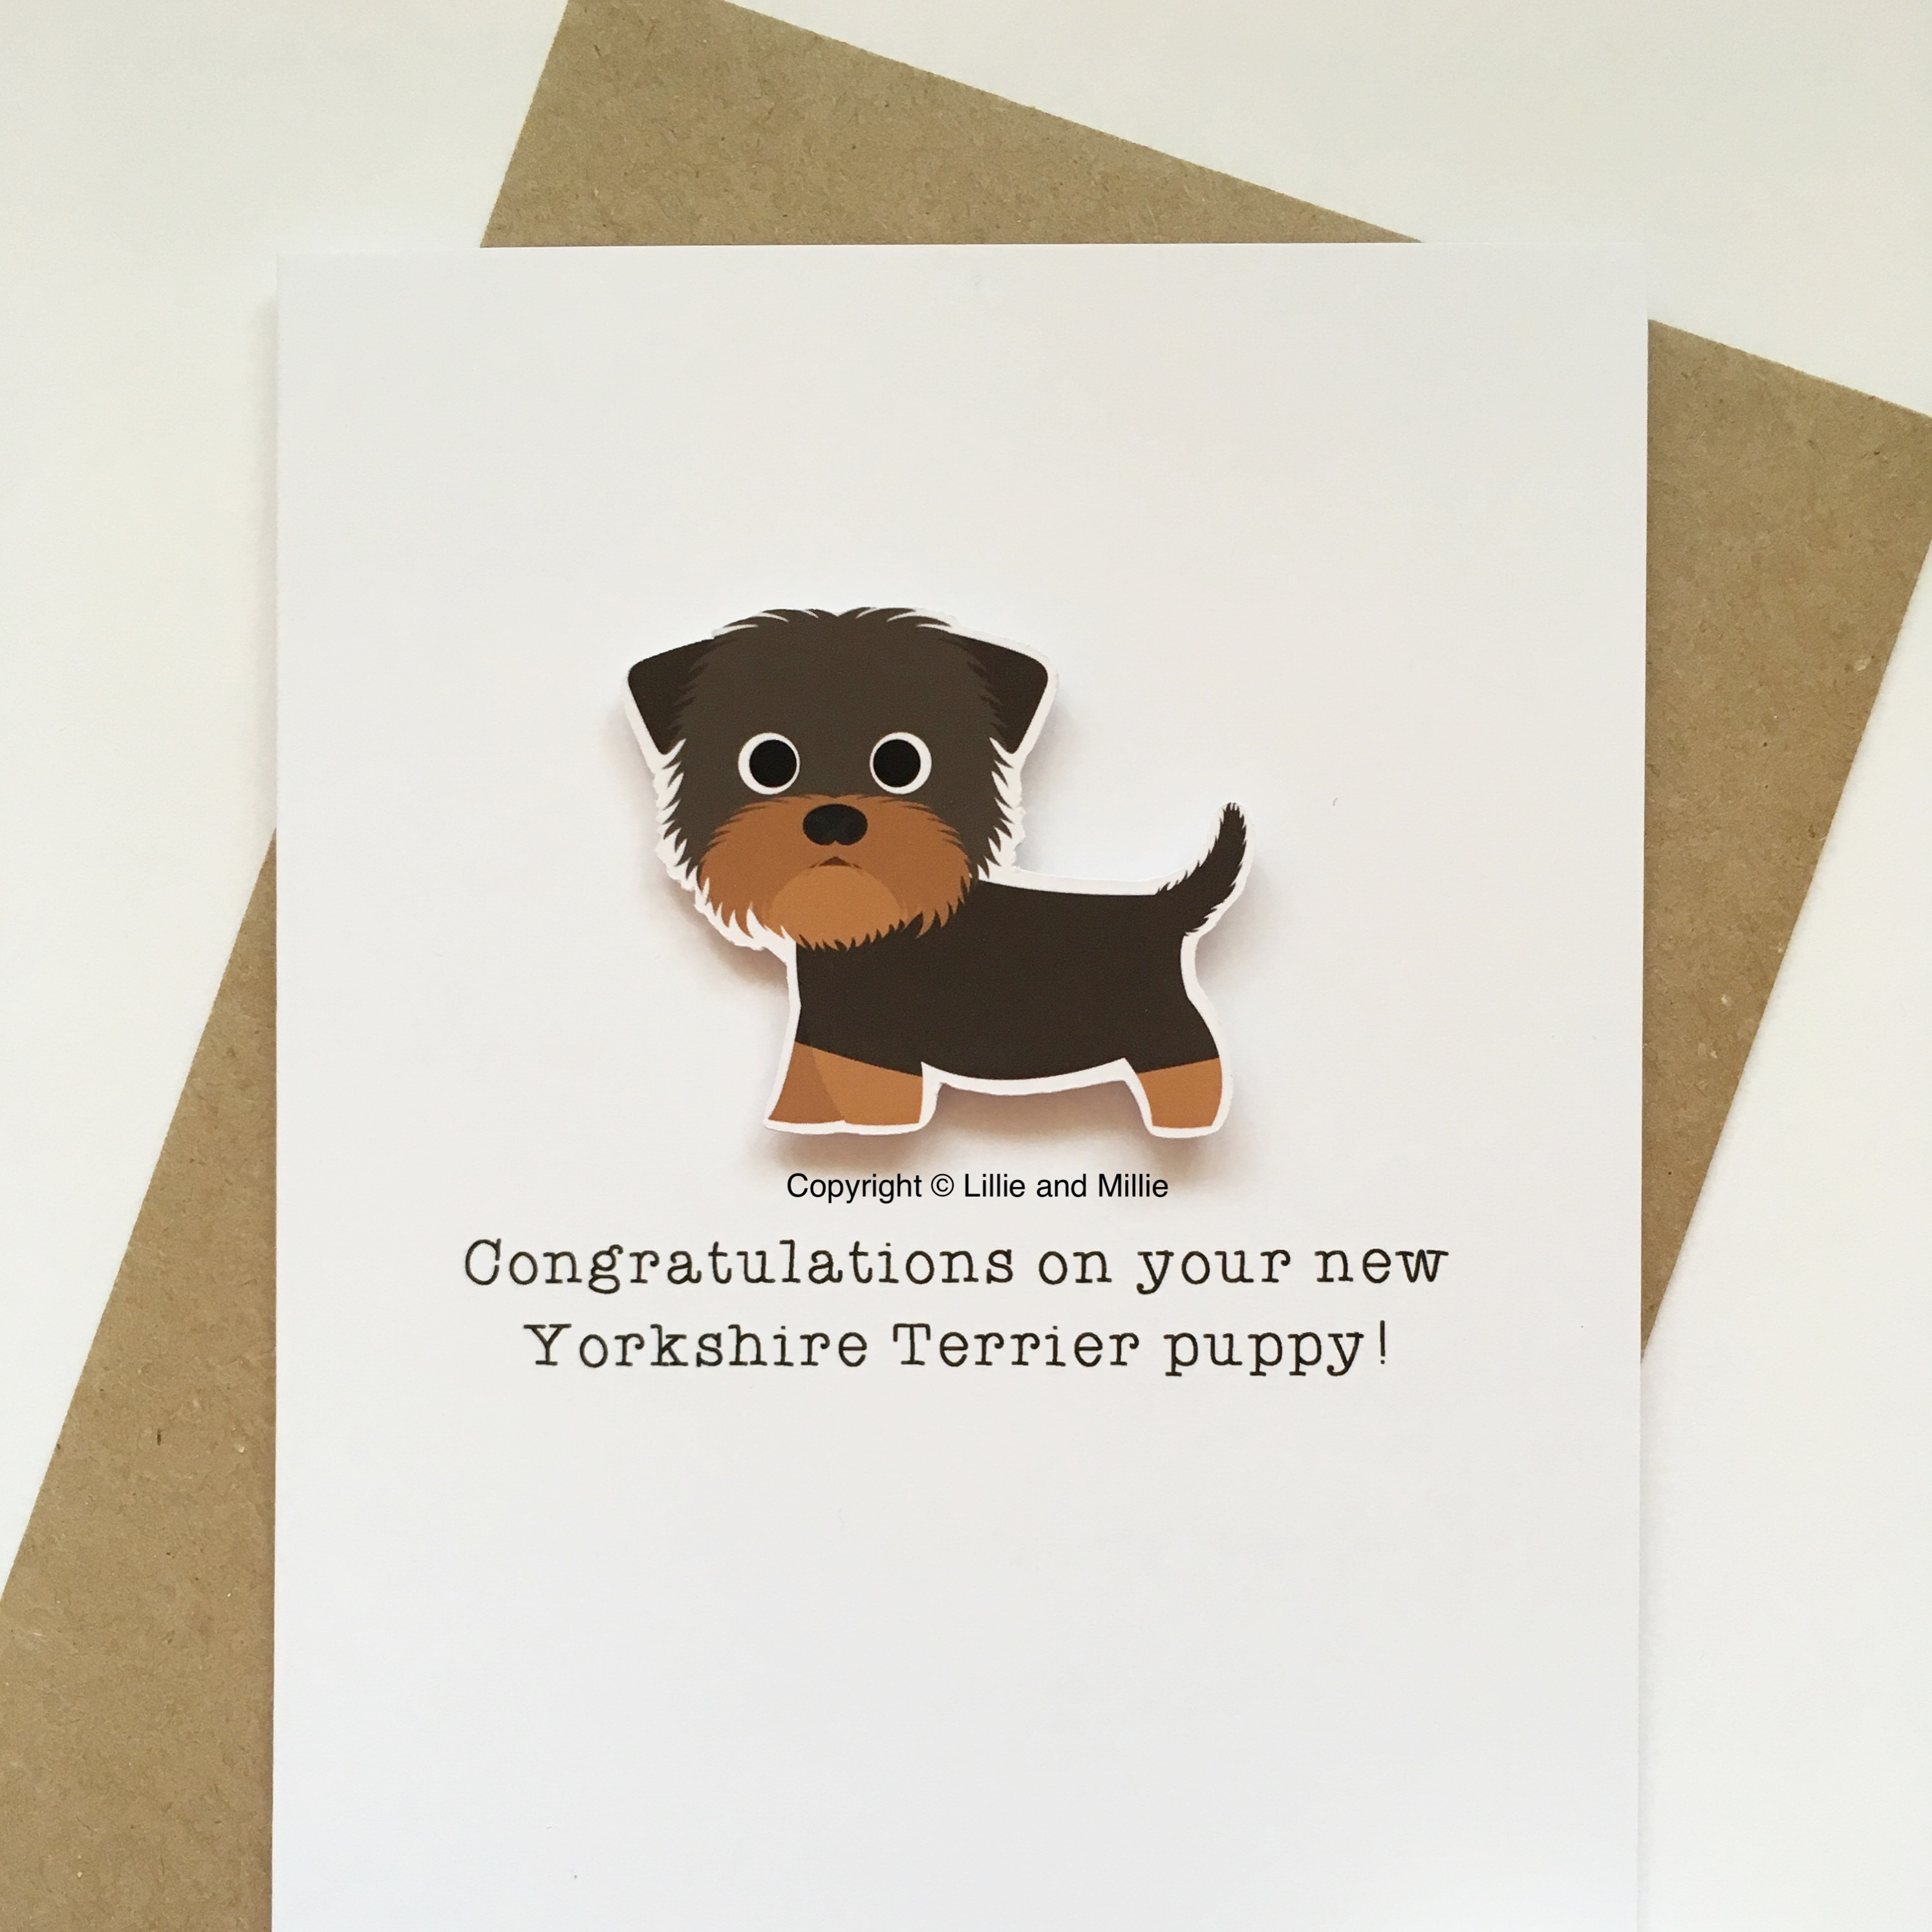 Cute and Cuddly Yorkshire Terrier Congratulations Puppy Card